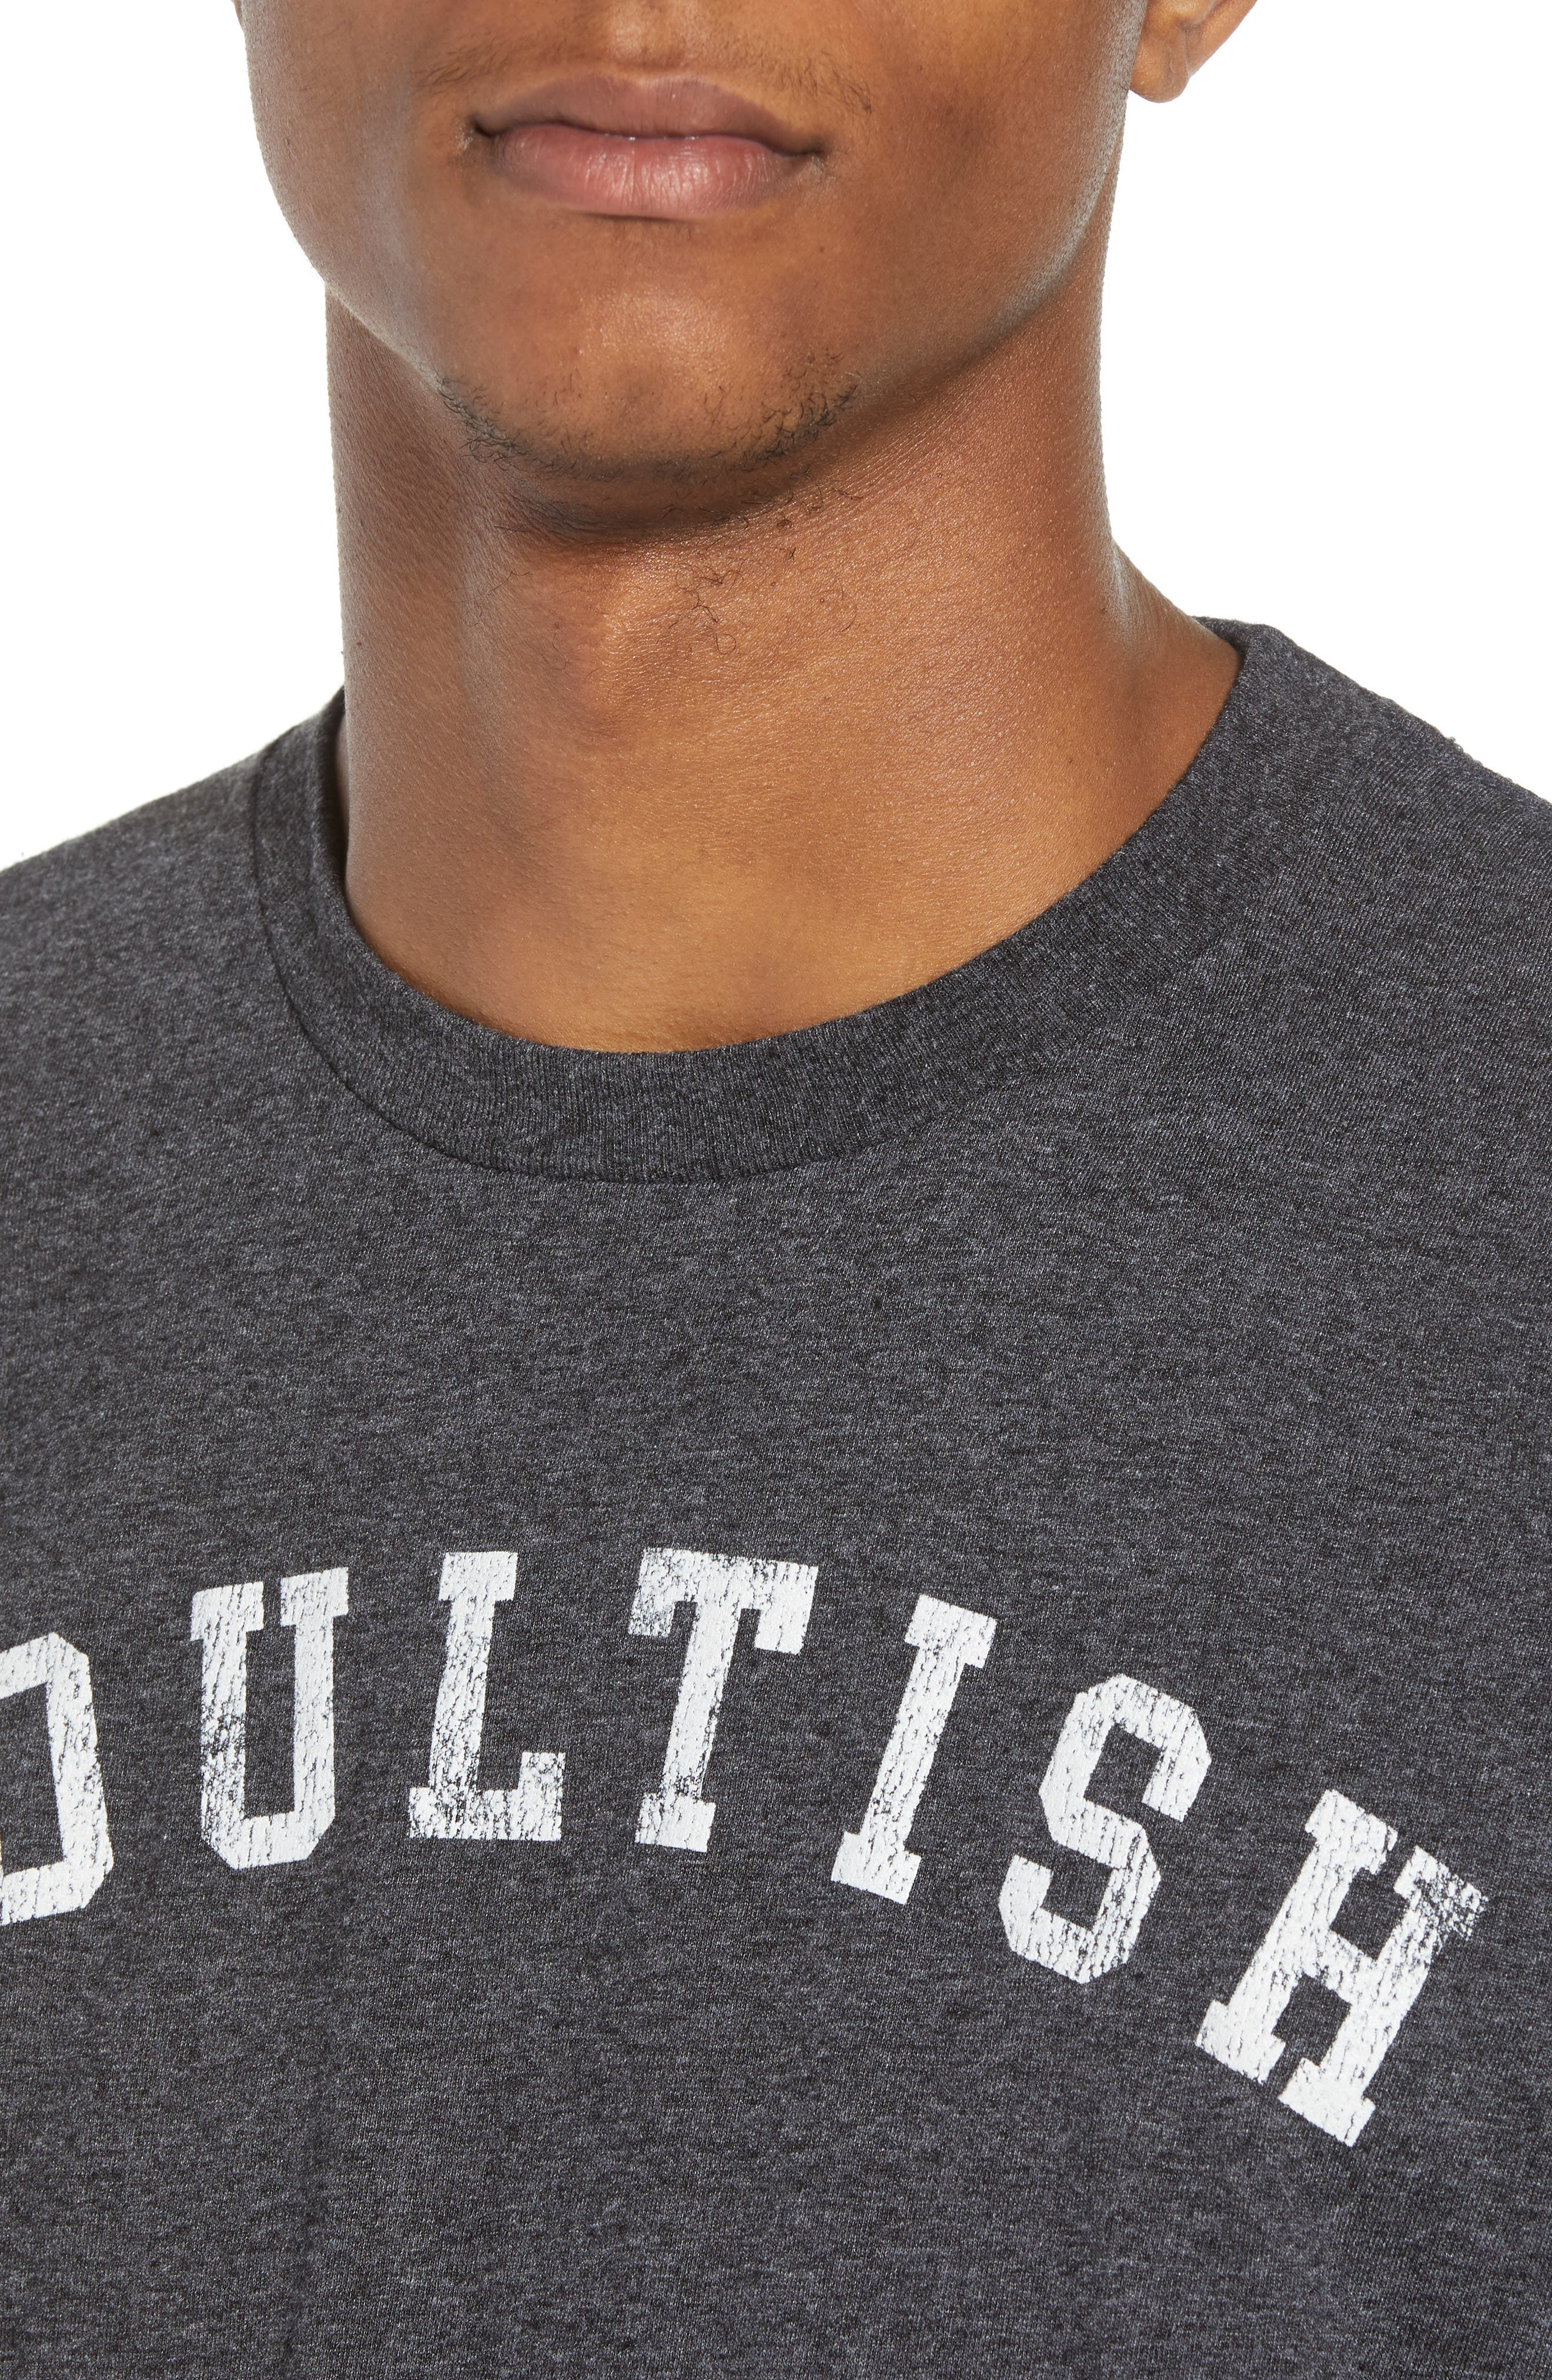 Adultish T-Shirt,                             Alternate thumbnail 4, color,                             Black Tee Adultish